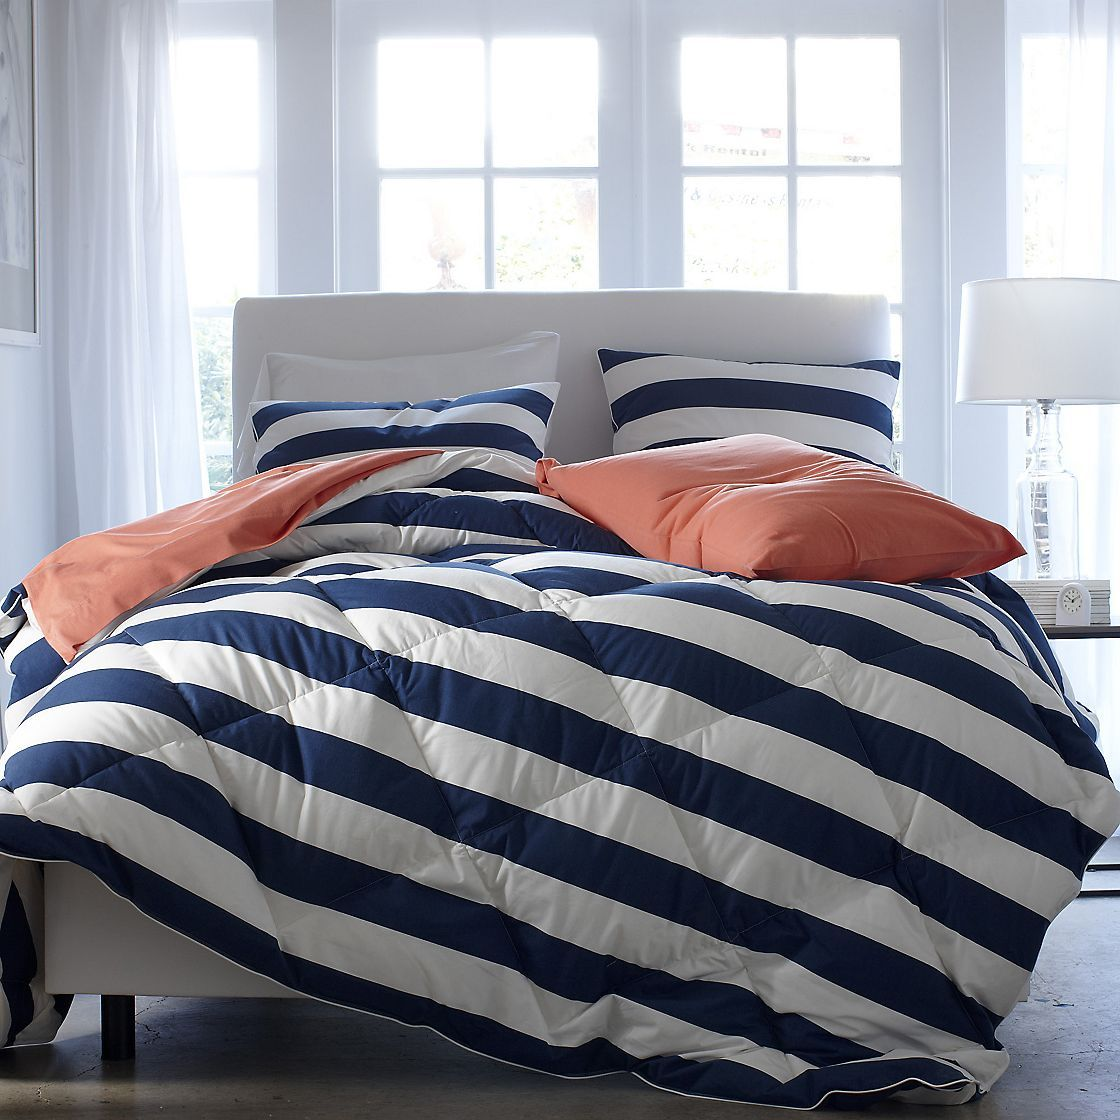 Blue and white bedding - My Favorite Finds Red White And Blue Bedrooms